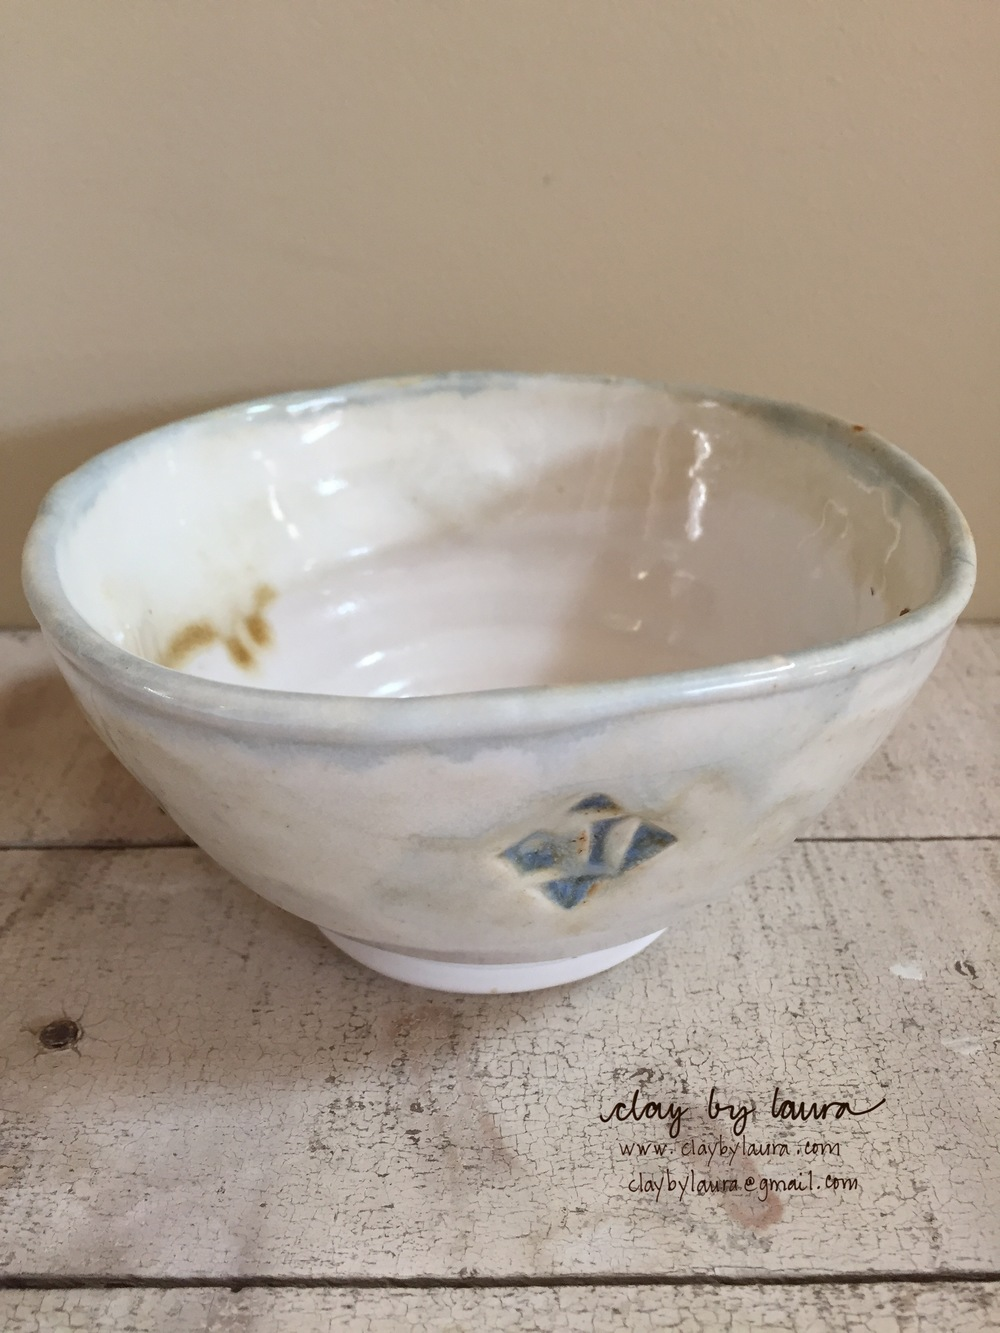 I recently received this bowl in a trade with another potter. Each time I use it, I'm not only reminded of the potter and incredible food blogger, Deb Bernstein that created it -- but I'm also grateful for the generosity of the clay community I'm lucky to be part of.